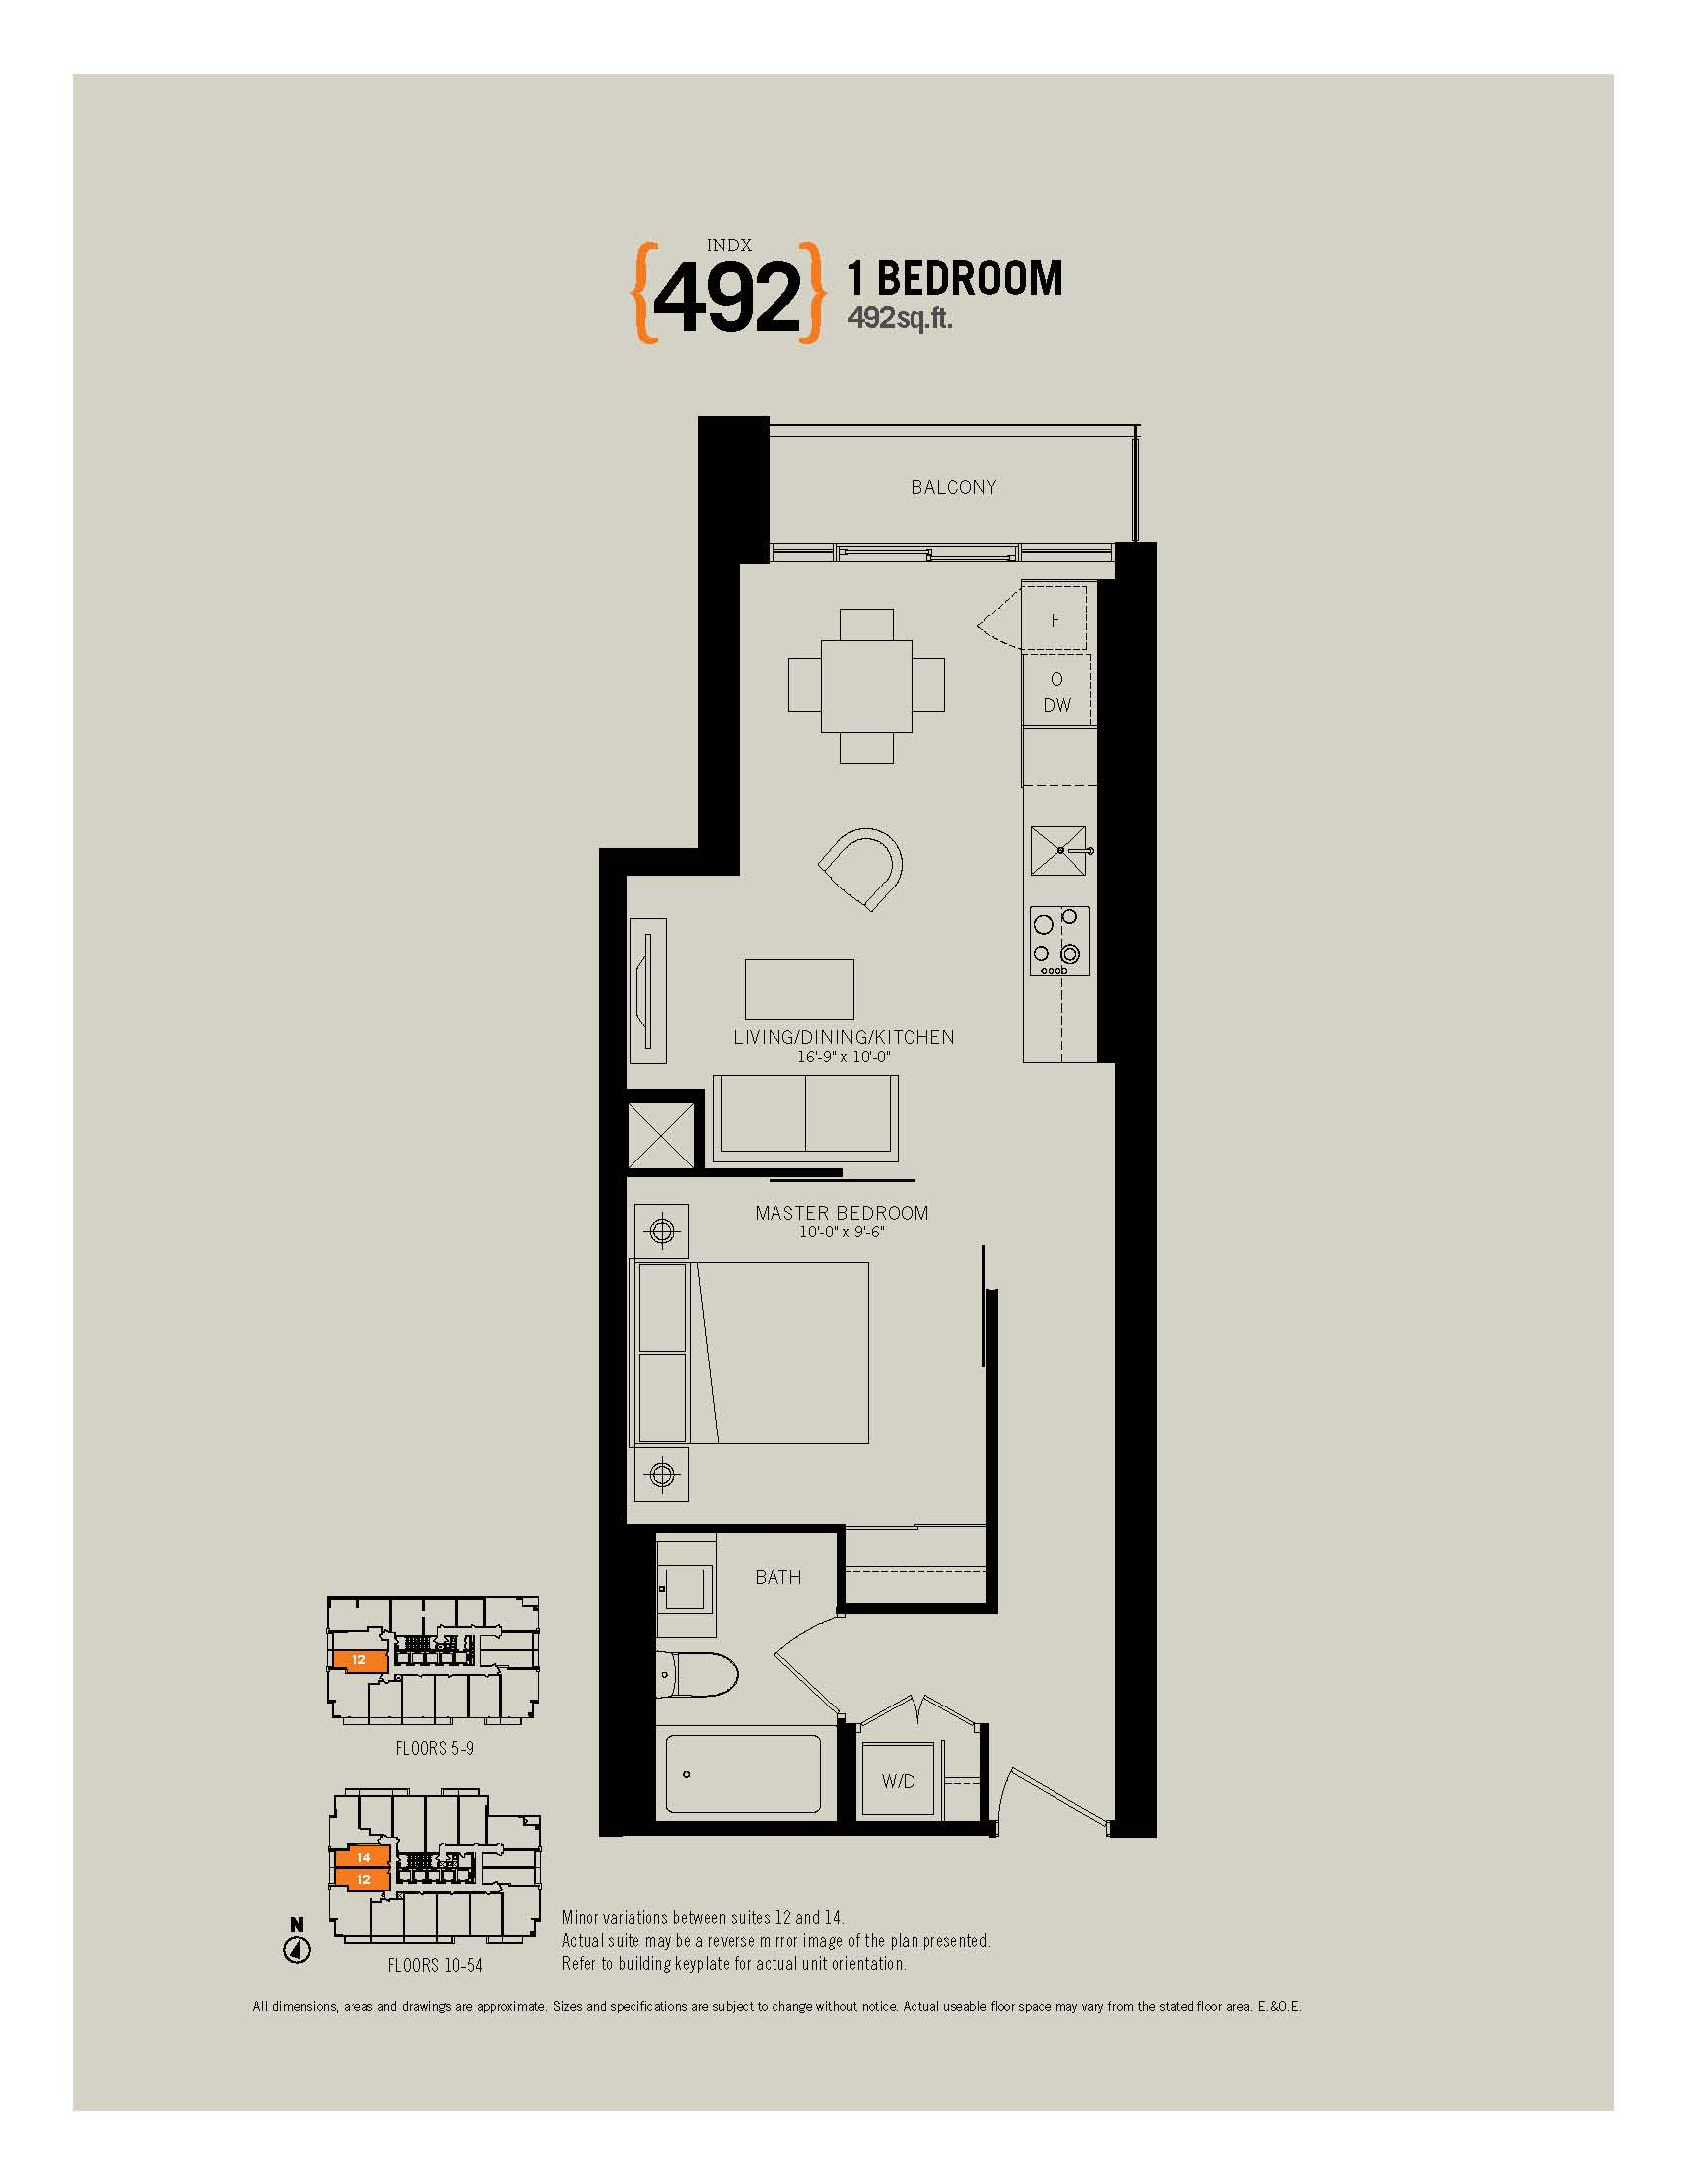 Indx condos 70 temperance st axon capital realty for Condo plans free